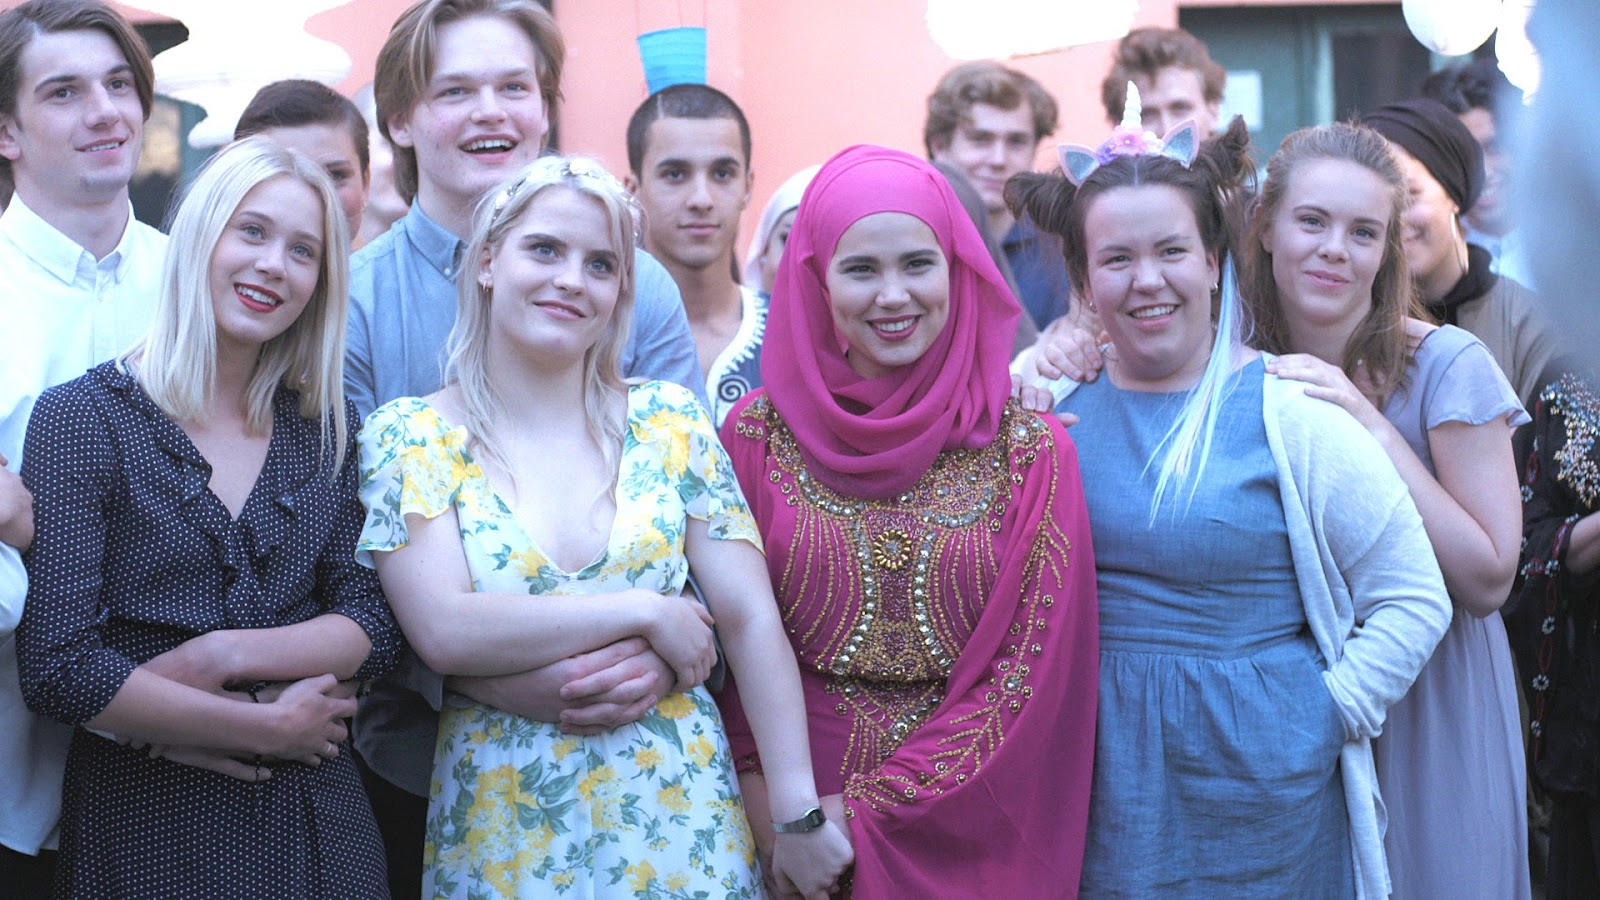 SKAM Norway. The five friends, Noora, Vilde, Sana, Chris, and Eva, are all dressed up at a party, standing in a crowd with boys behind them. They are all looking up and smiling, Vilde and Sana are holding hands. Eva has her hands on Chris' shoulders.